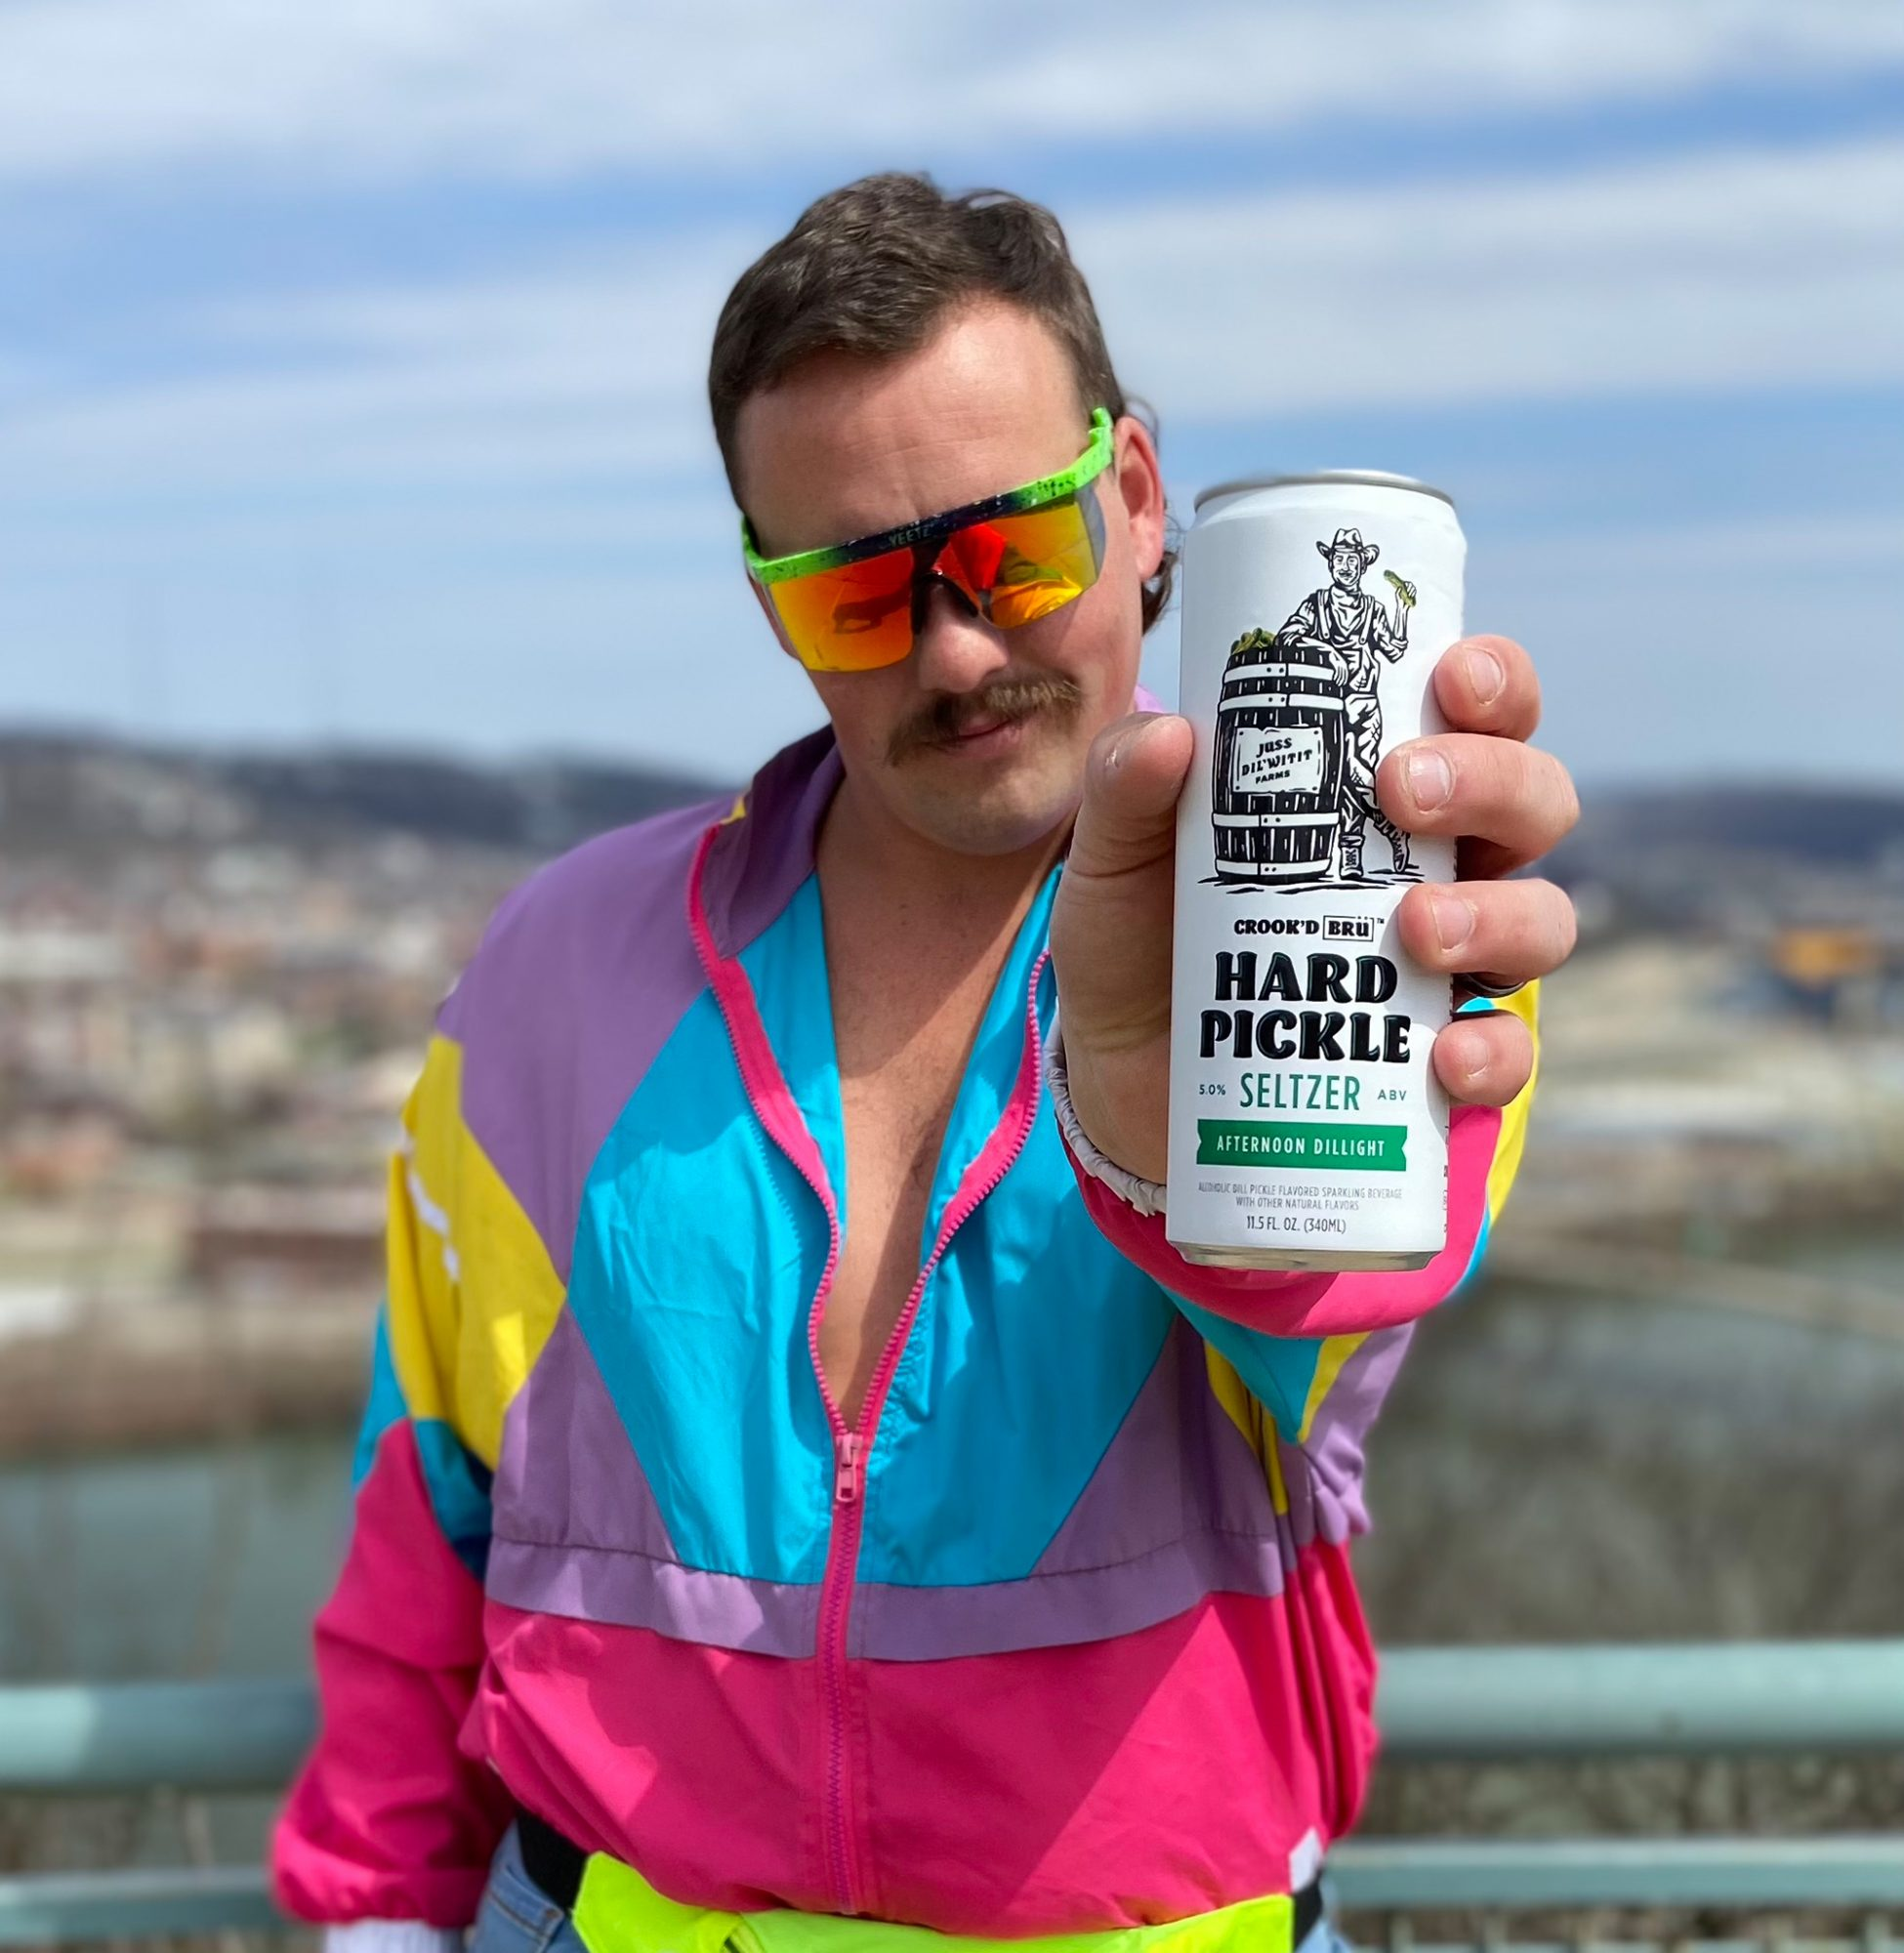 Brumate and Crook & Marker Team Up to Release Pickle Seltzer